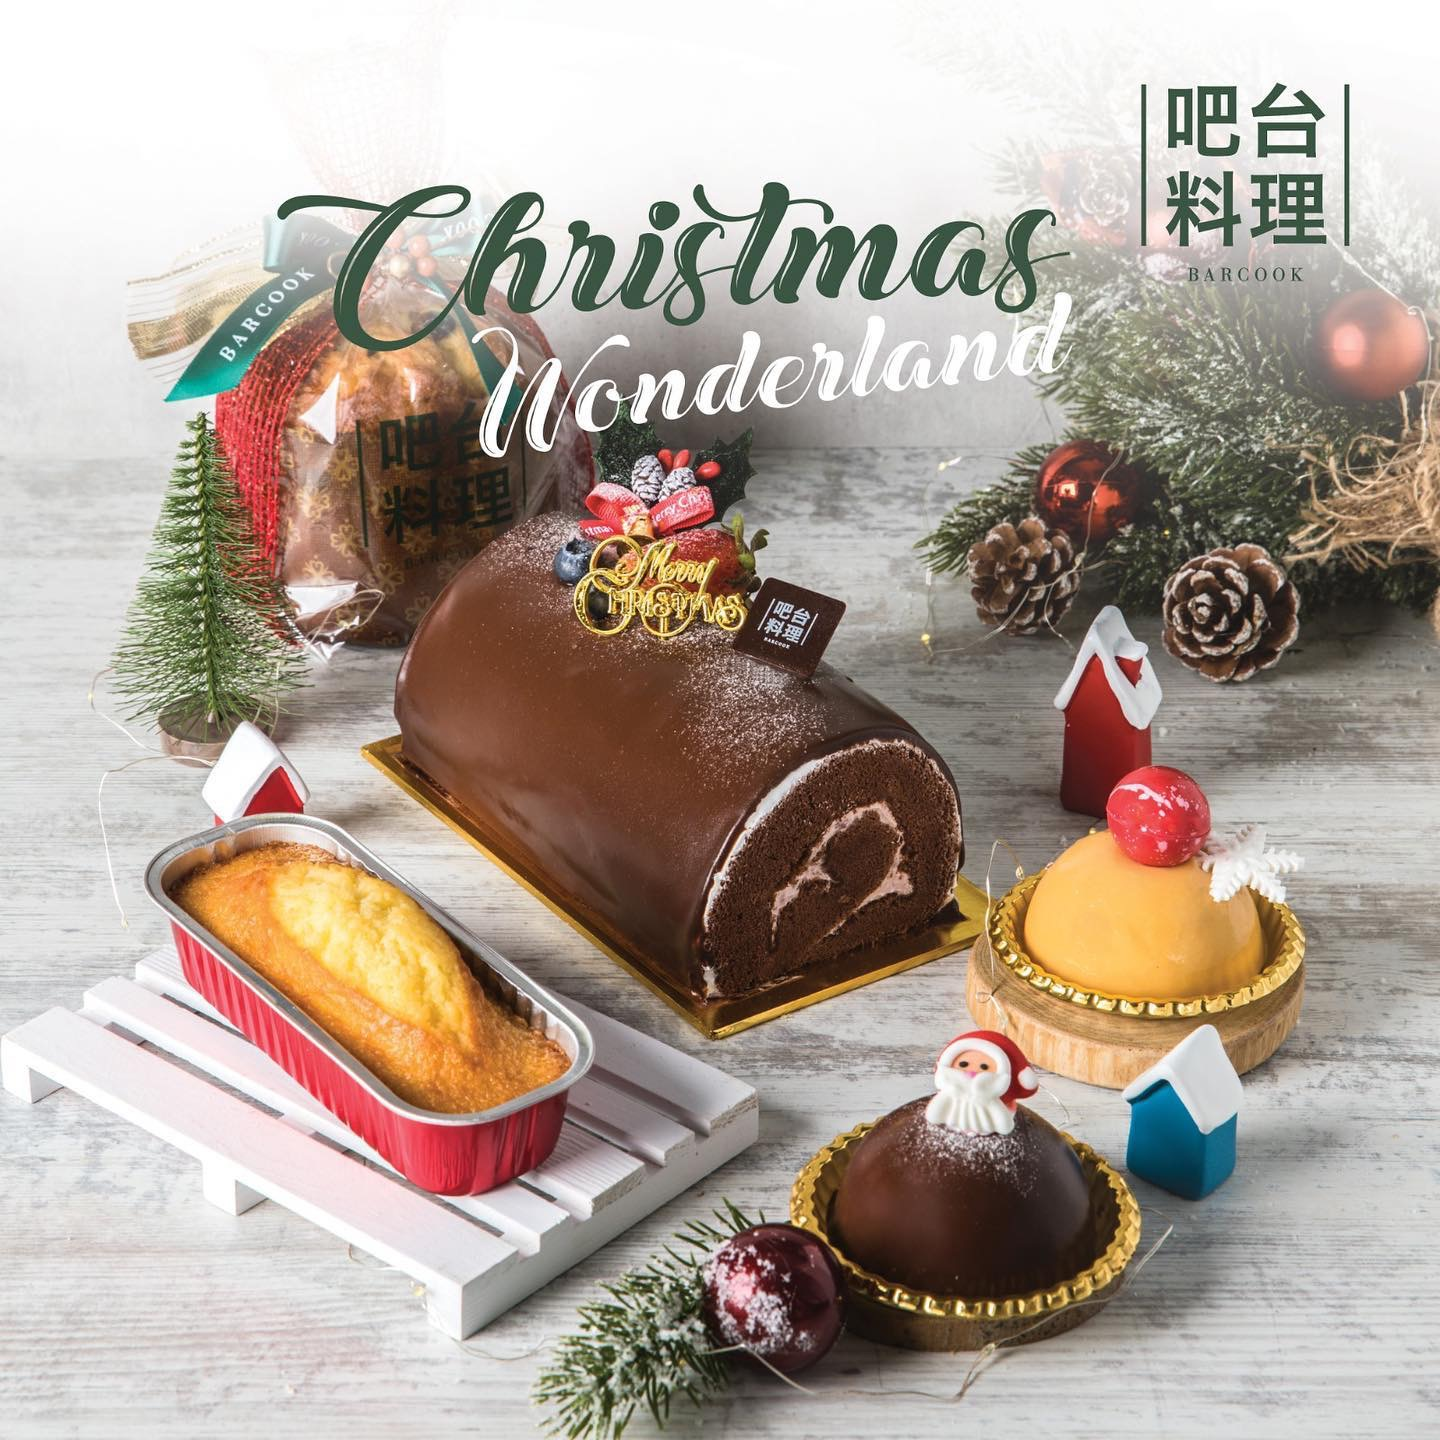 Barcook Singapore Get $5 Voucher with Every $35 Spent Christmas Special Promotion 2-31 Dec 2019 | Why Not Deals & Promotions